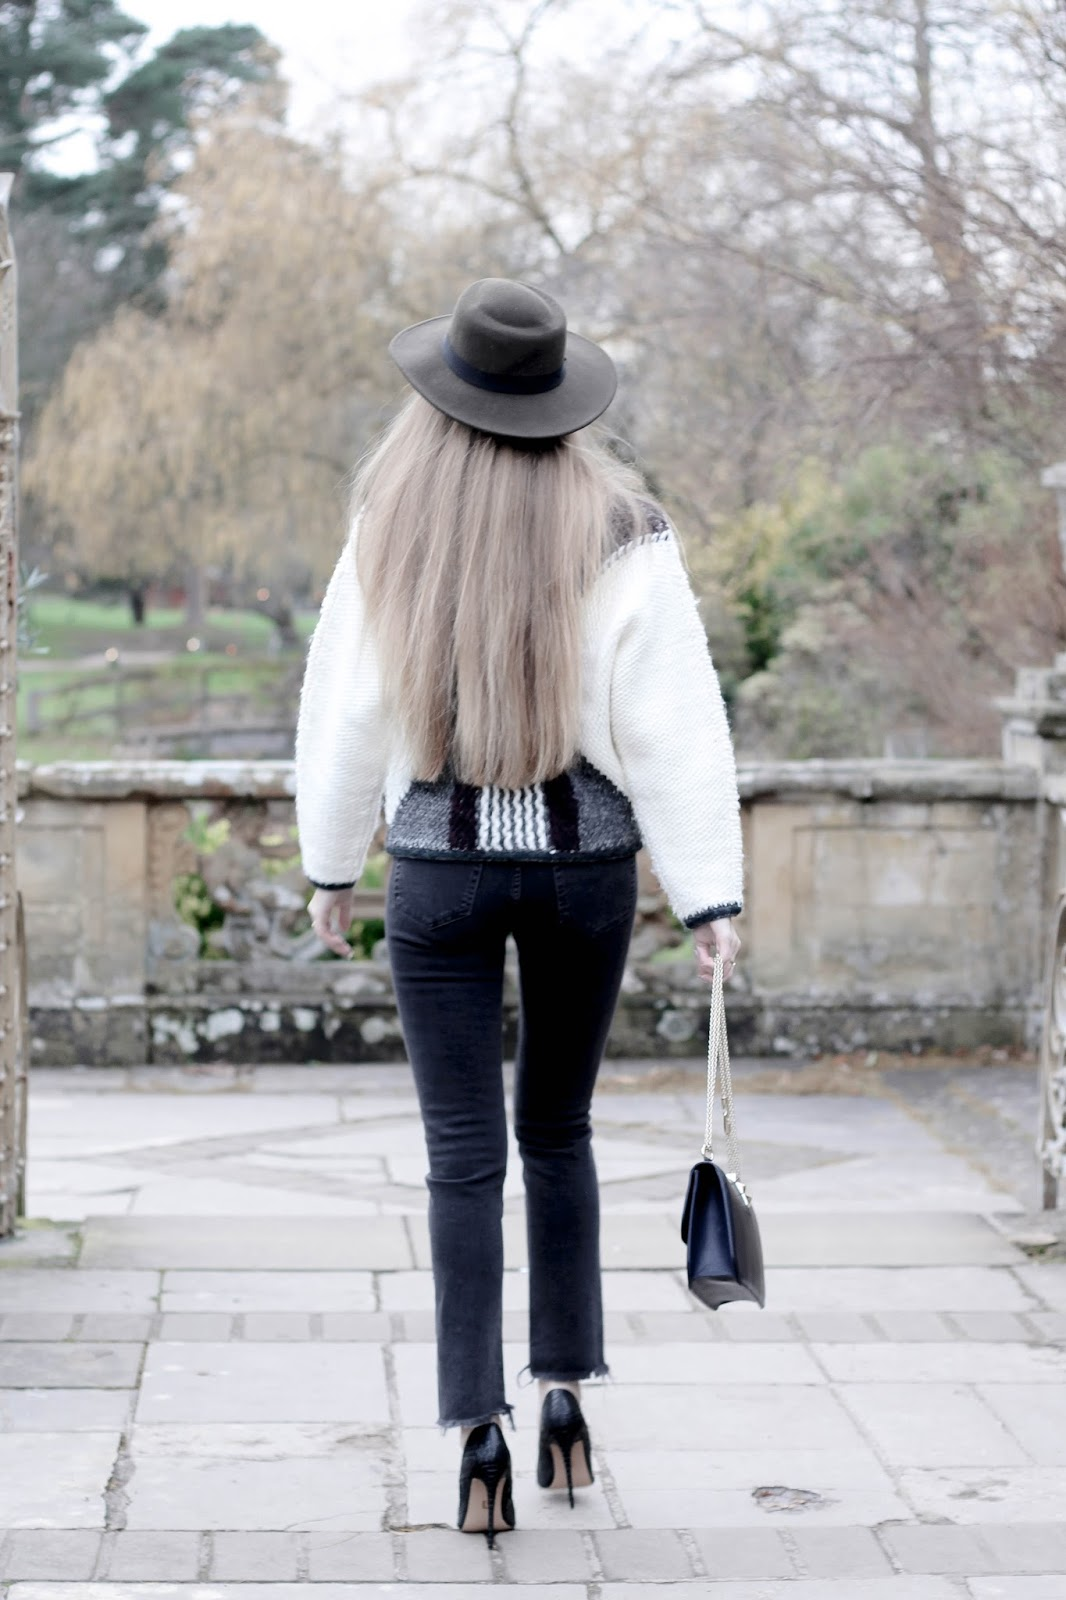 UK very long hair fashion blogger winter styling high heels